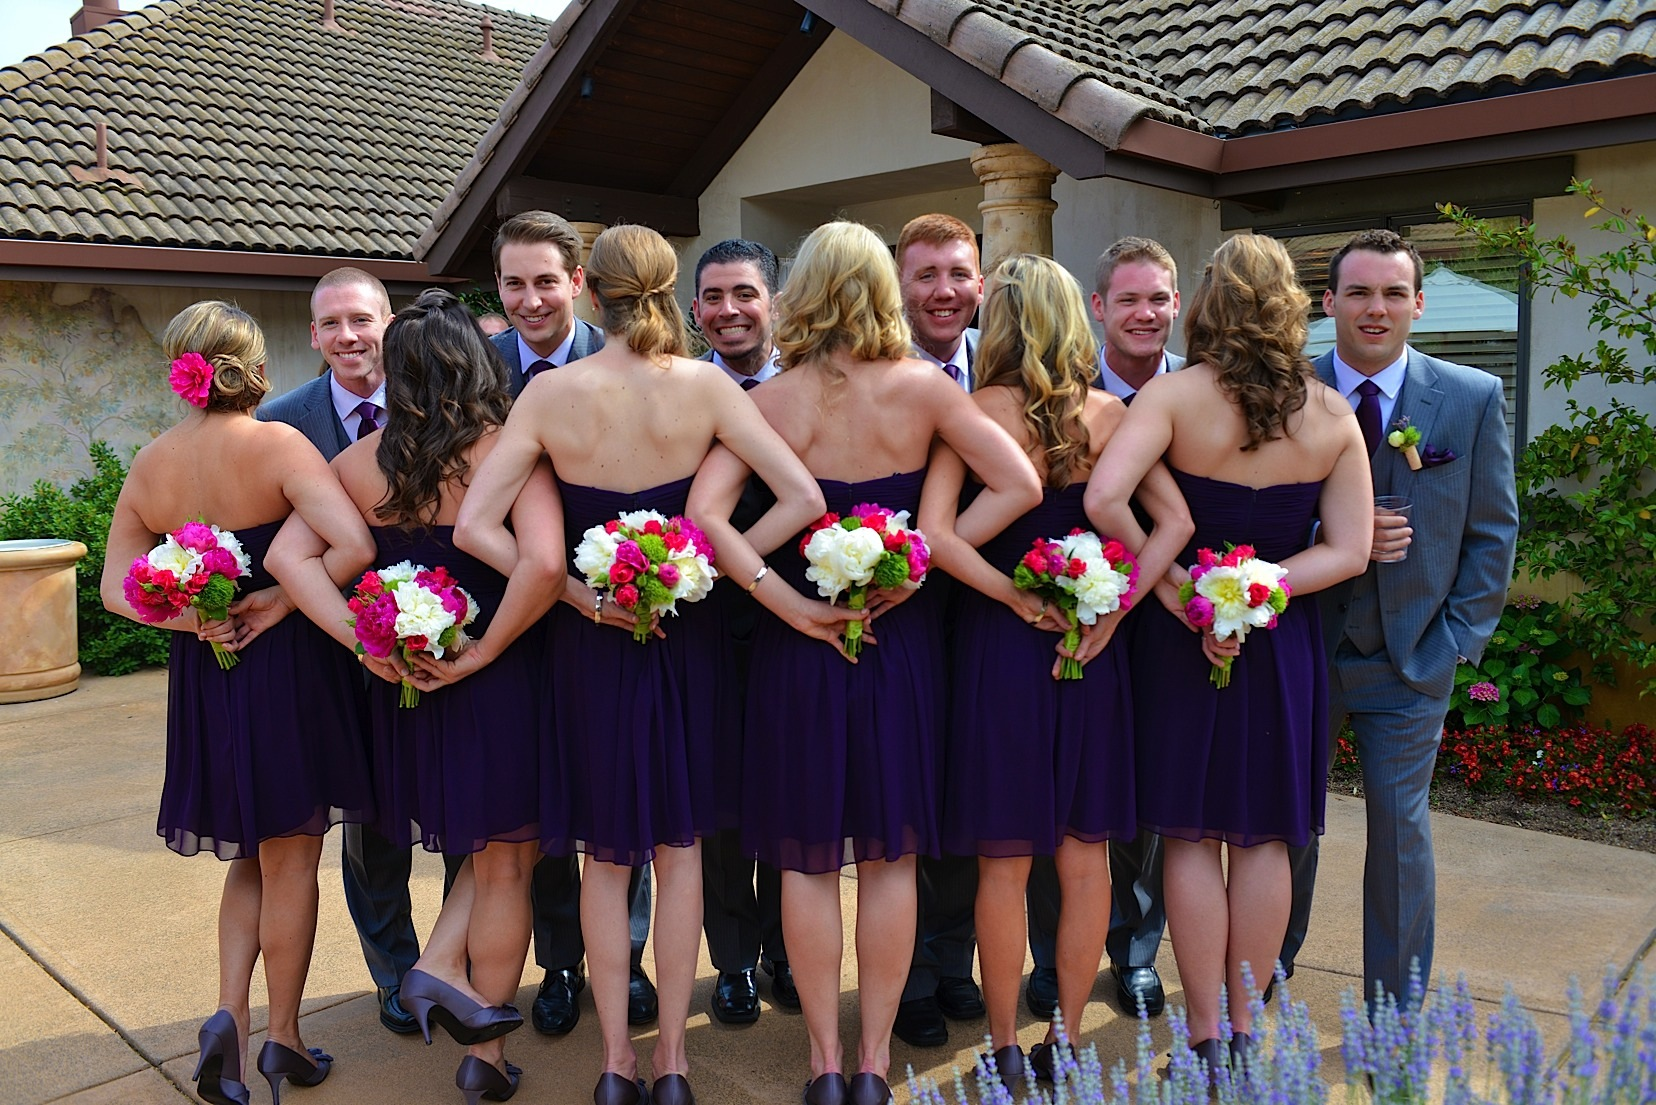 Napa Valley Artistic and Fun Wedding Photo of Bridesmaids